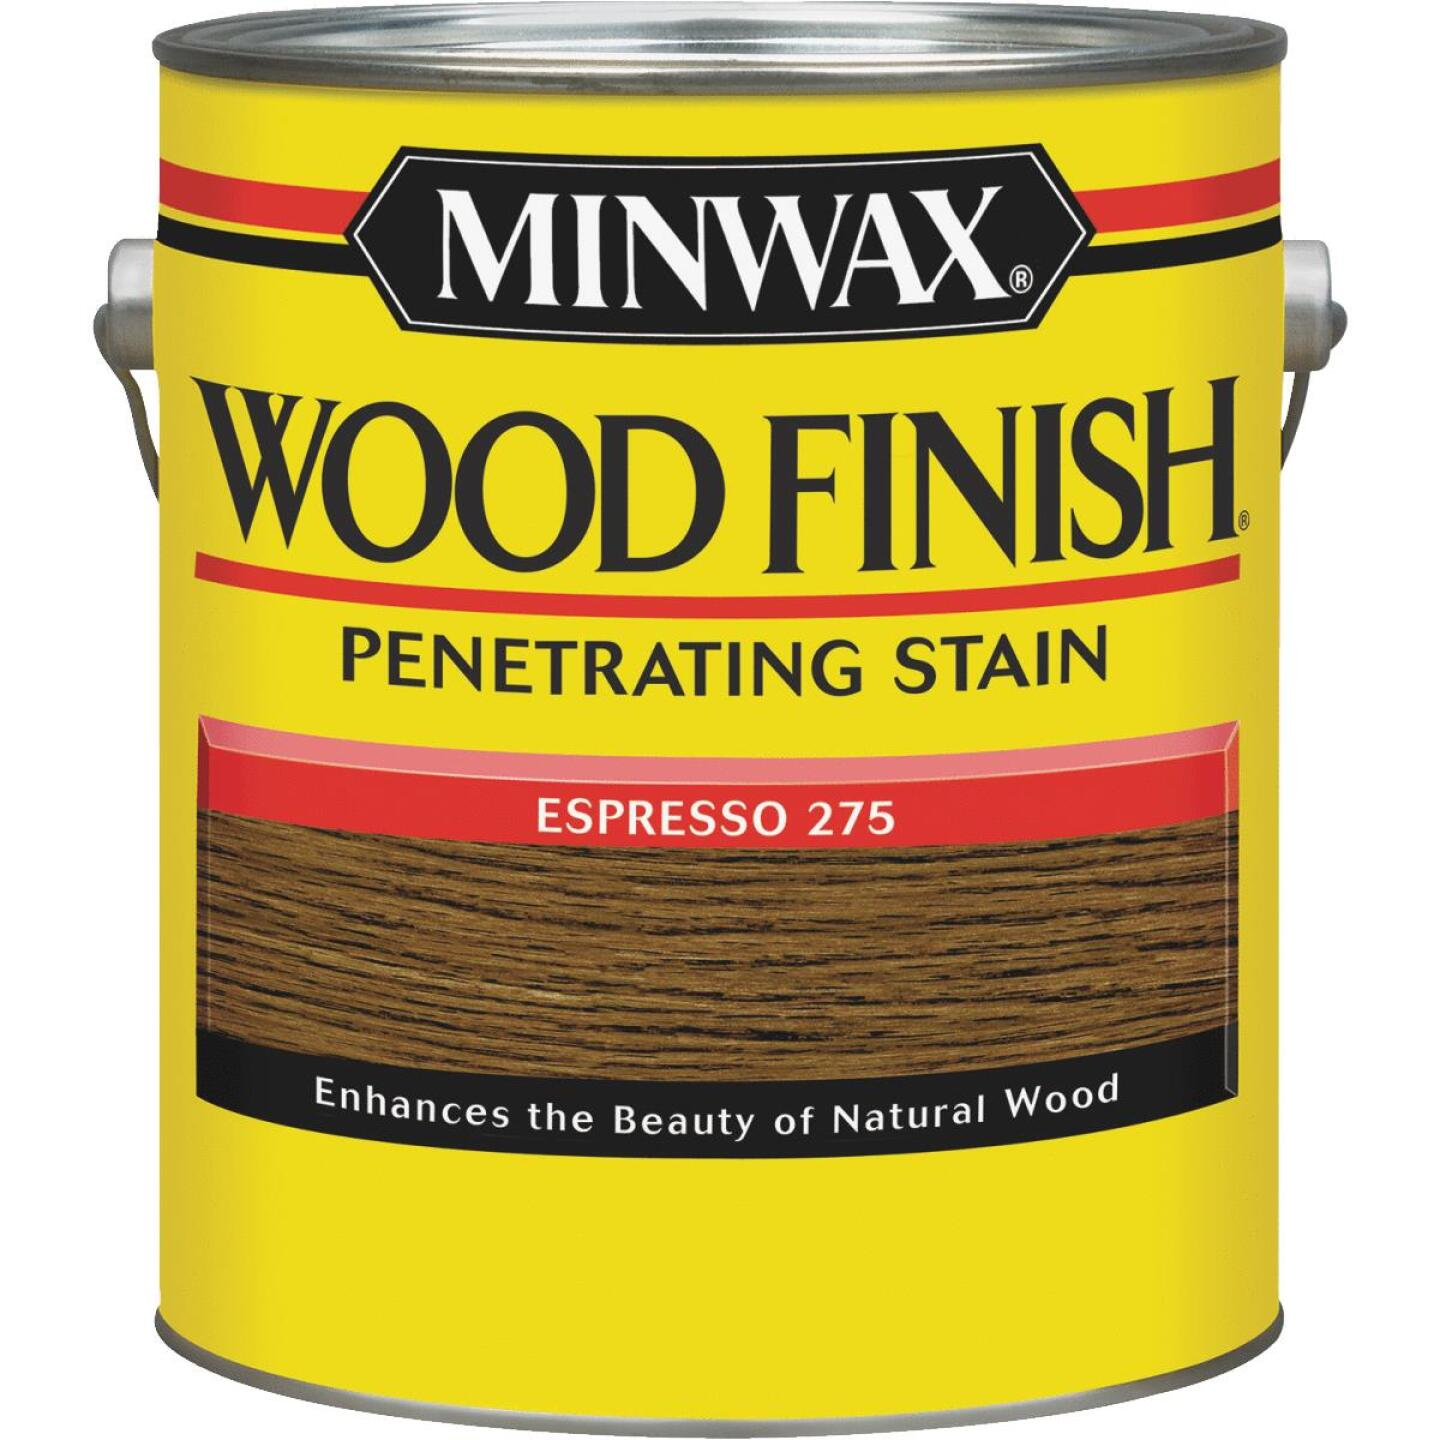 Minwax Wood Finish Penetrating Stain, Espresso, 1 Gal. Image 1